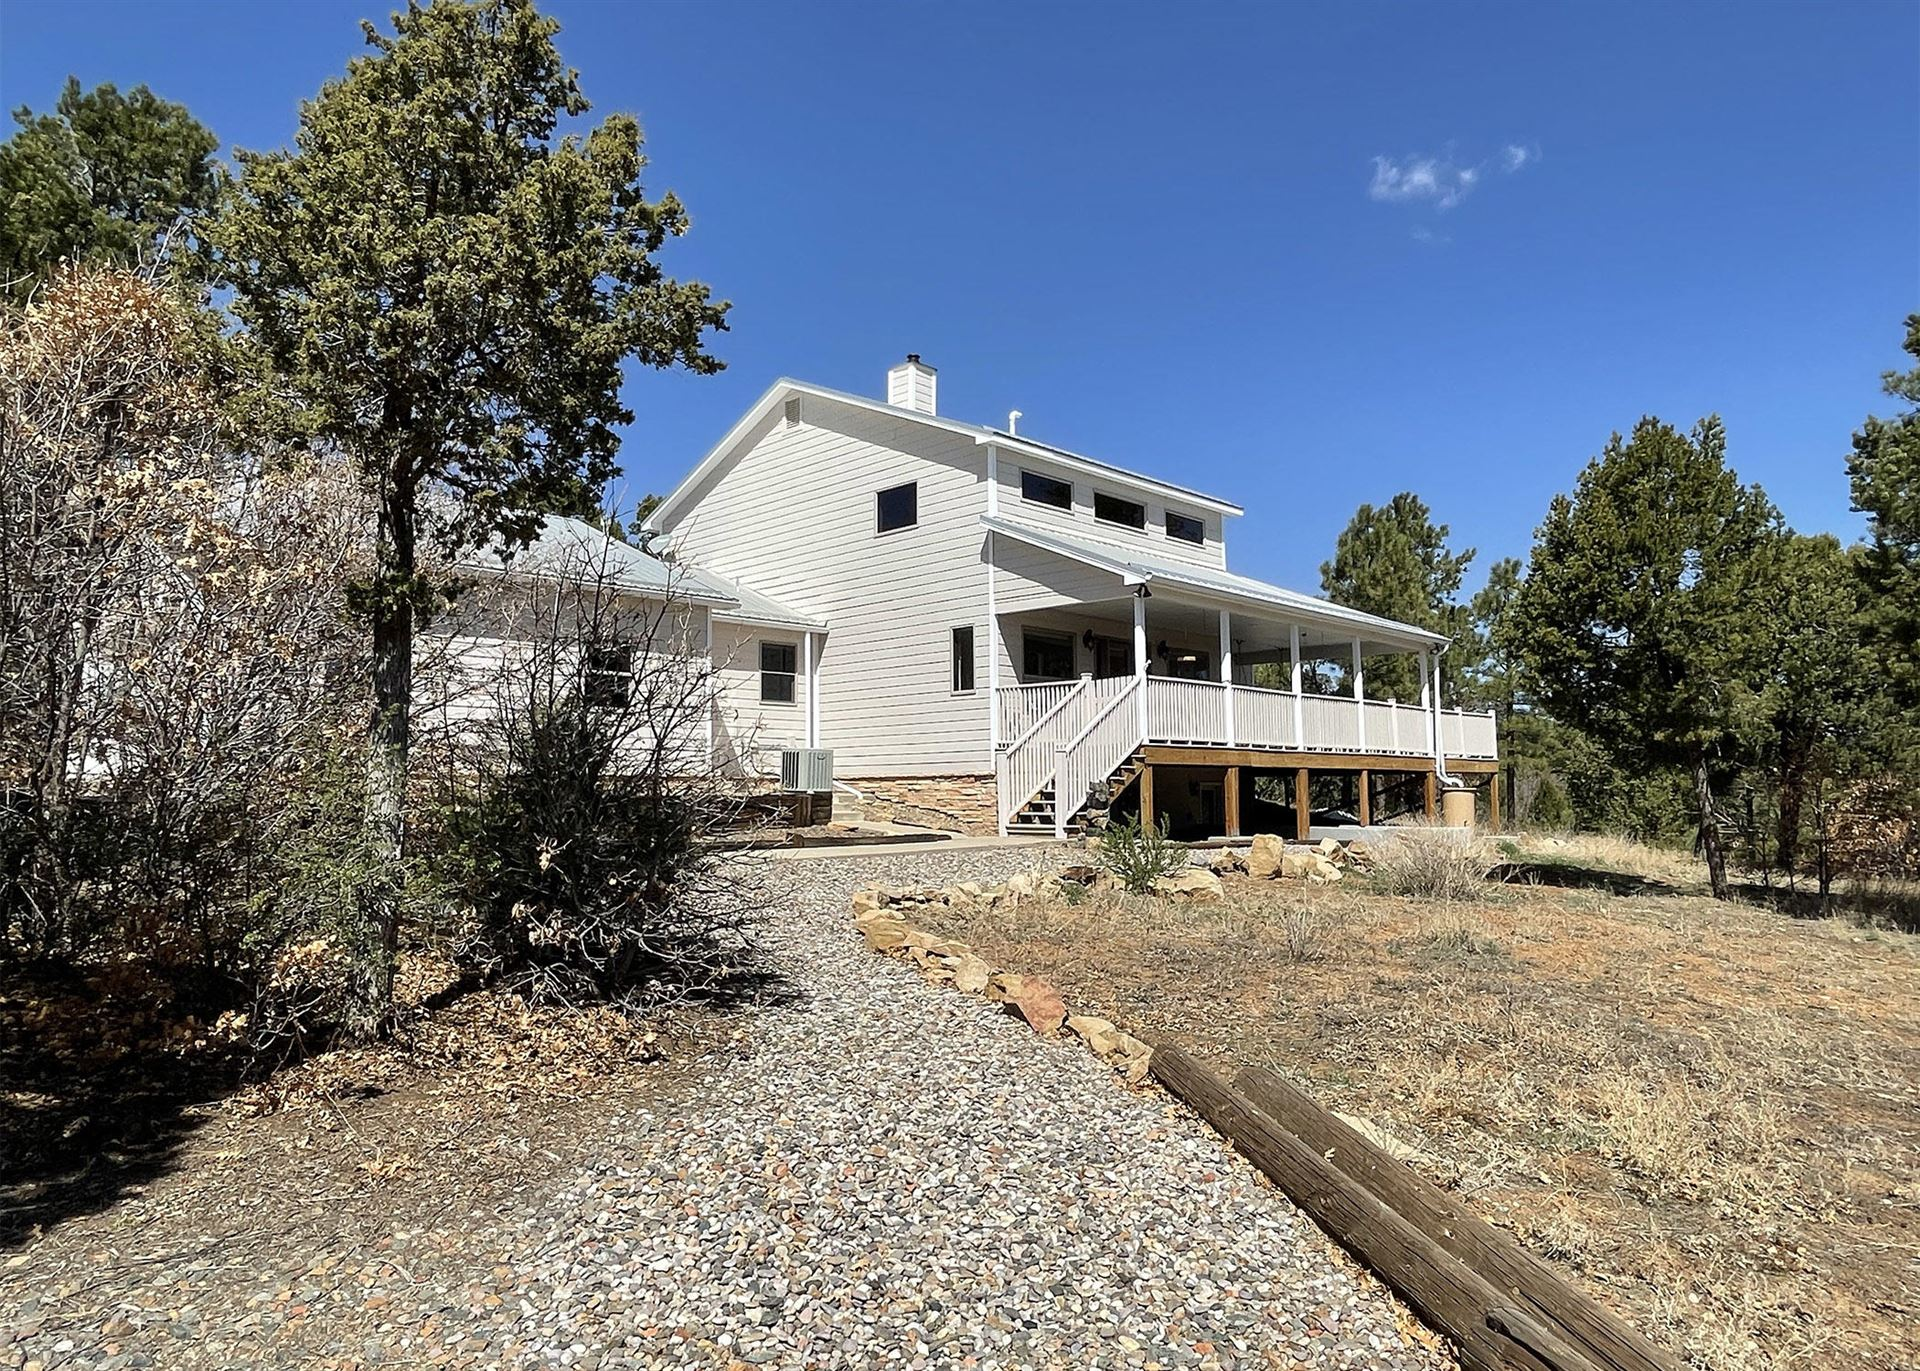 Photo for 15 Nichols Court, Tijeras, NM 87059 (MLS # 988469)